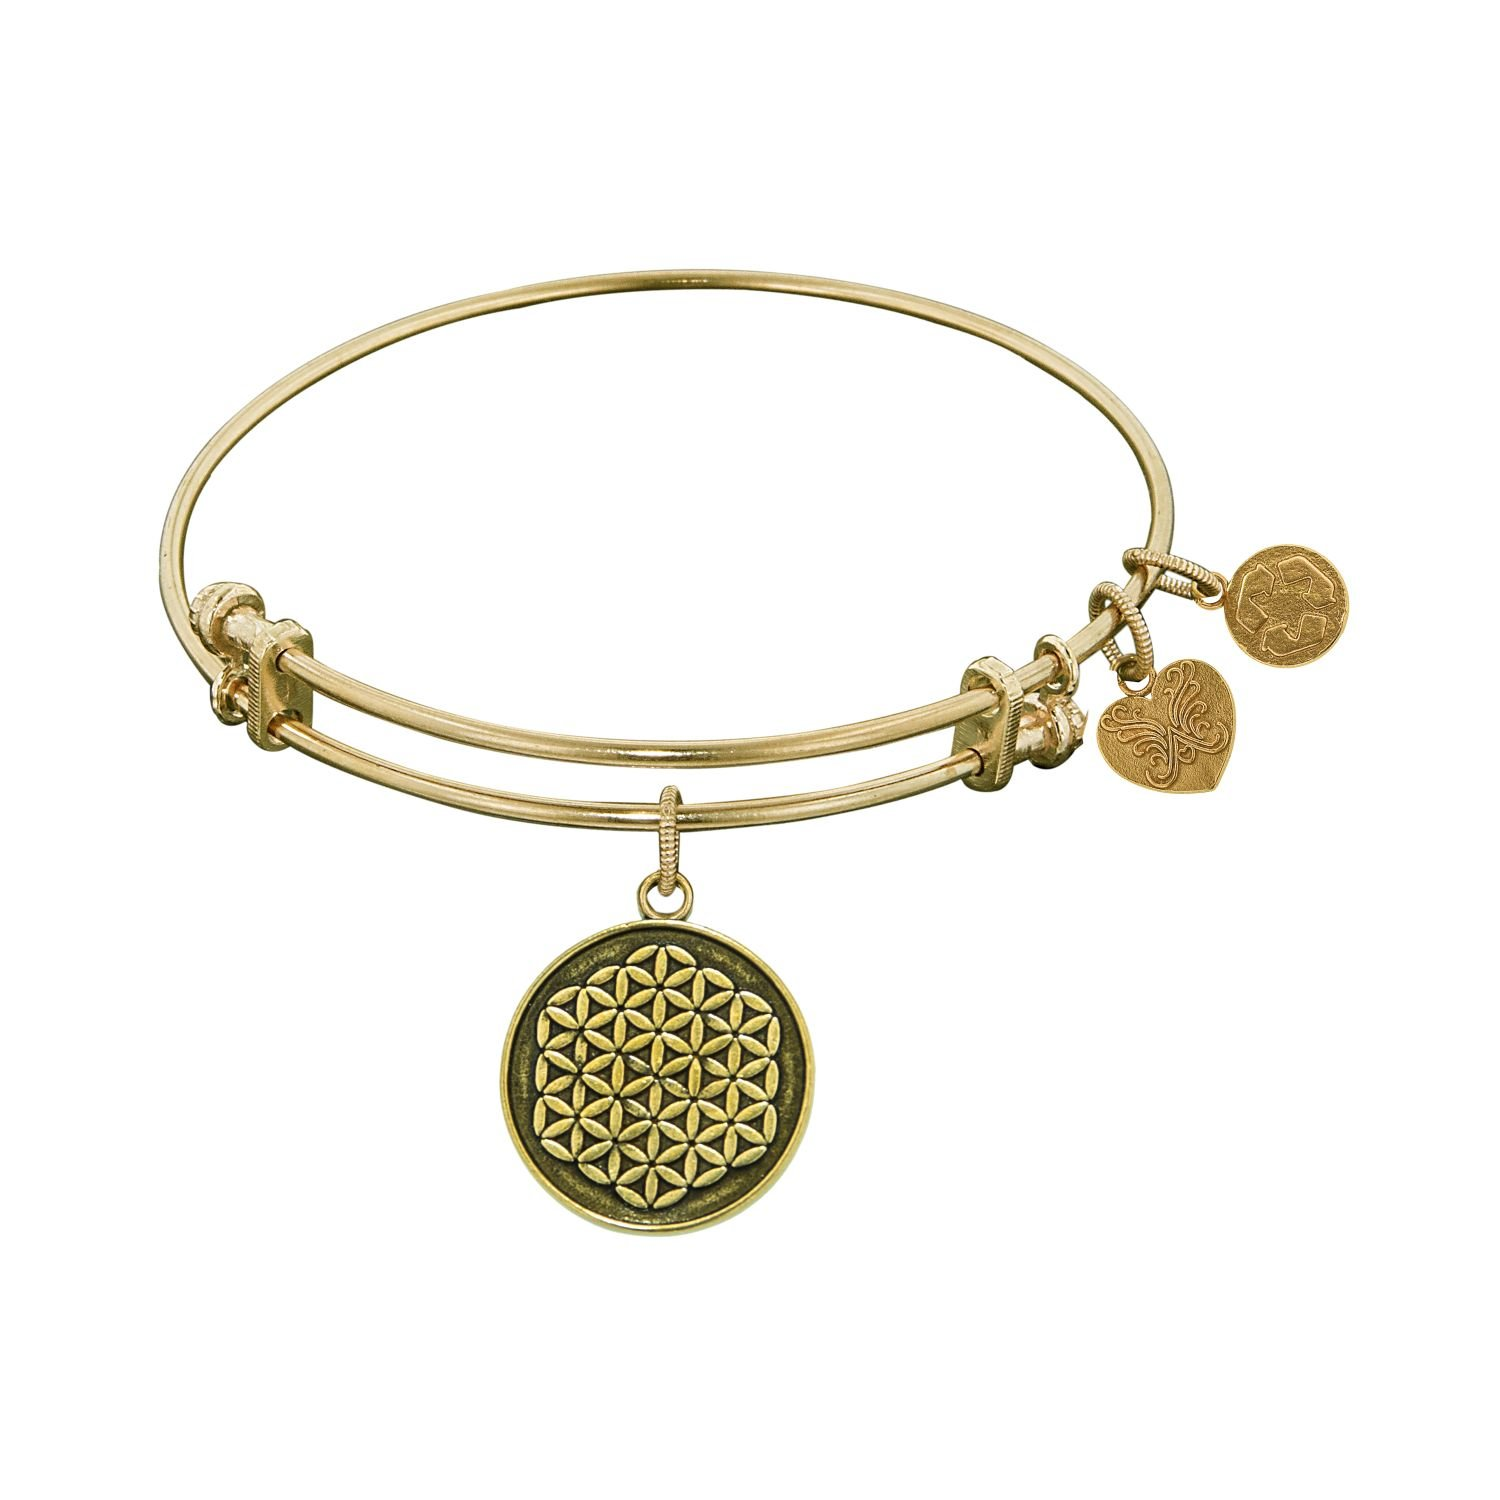 GEL1056 Angelica Ladies Spiritual Collection Bangle Charm 7.25 Inches Adjustable